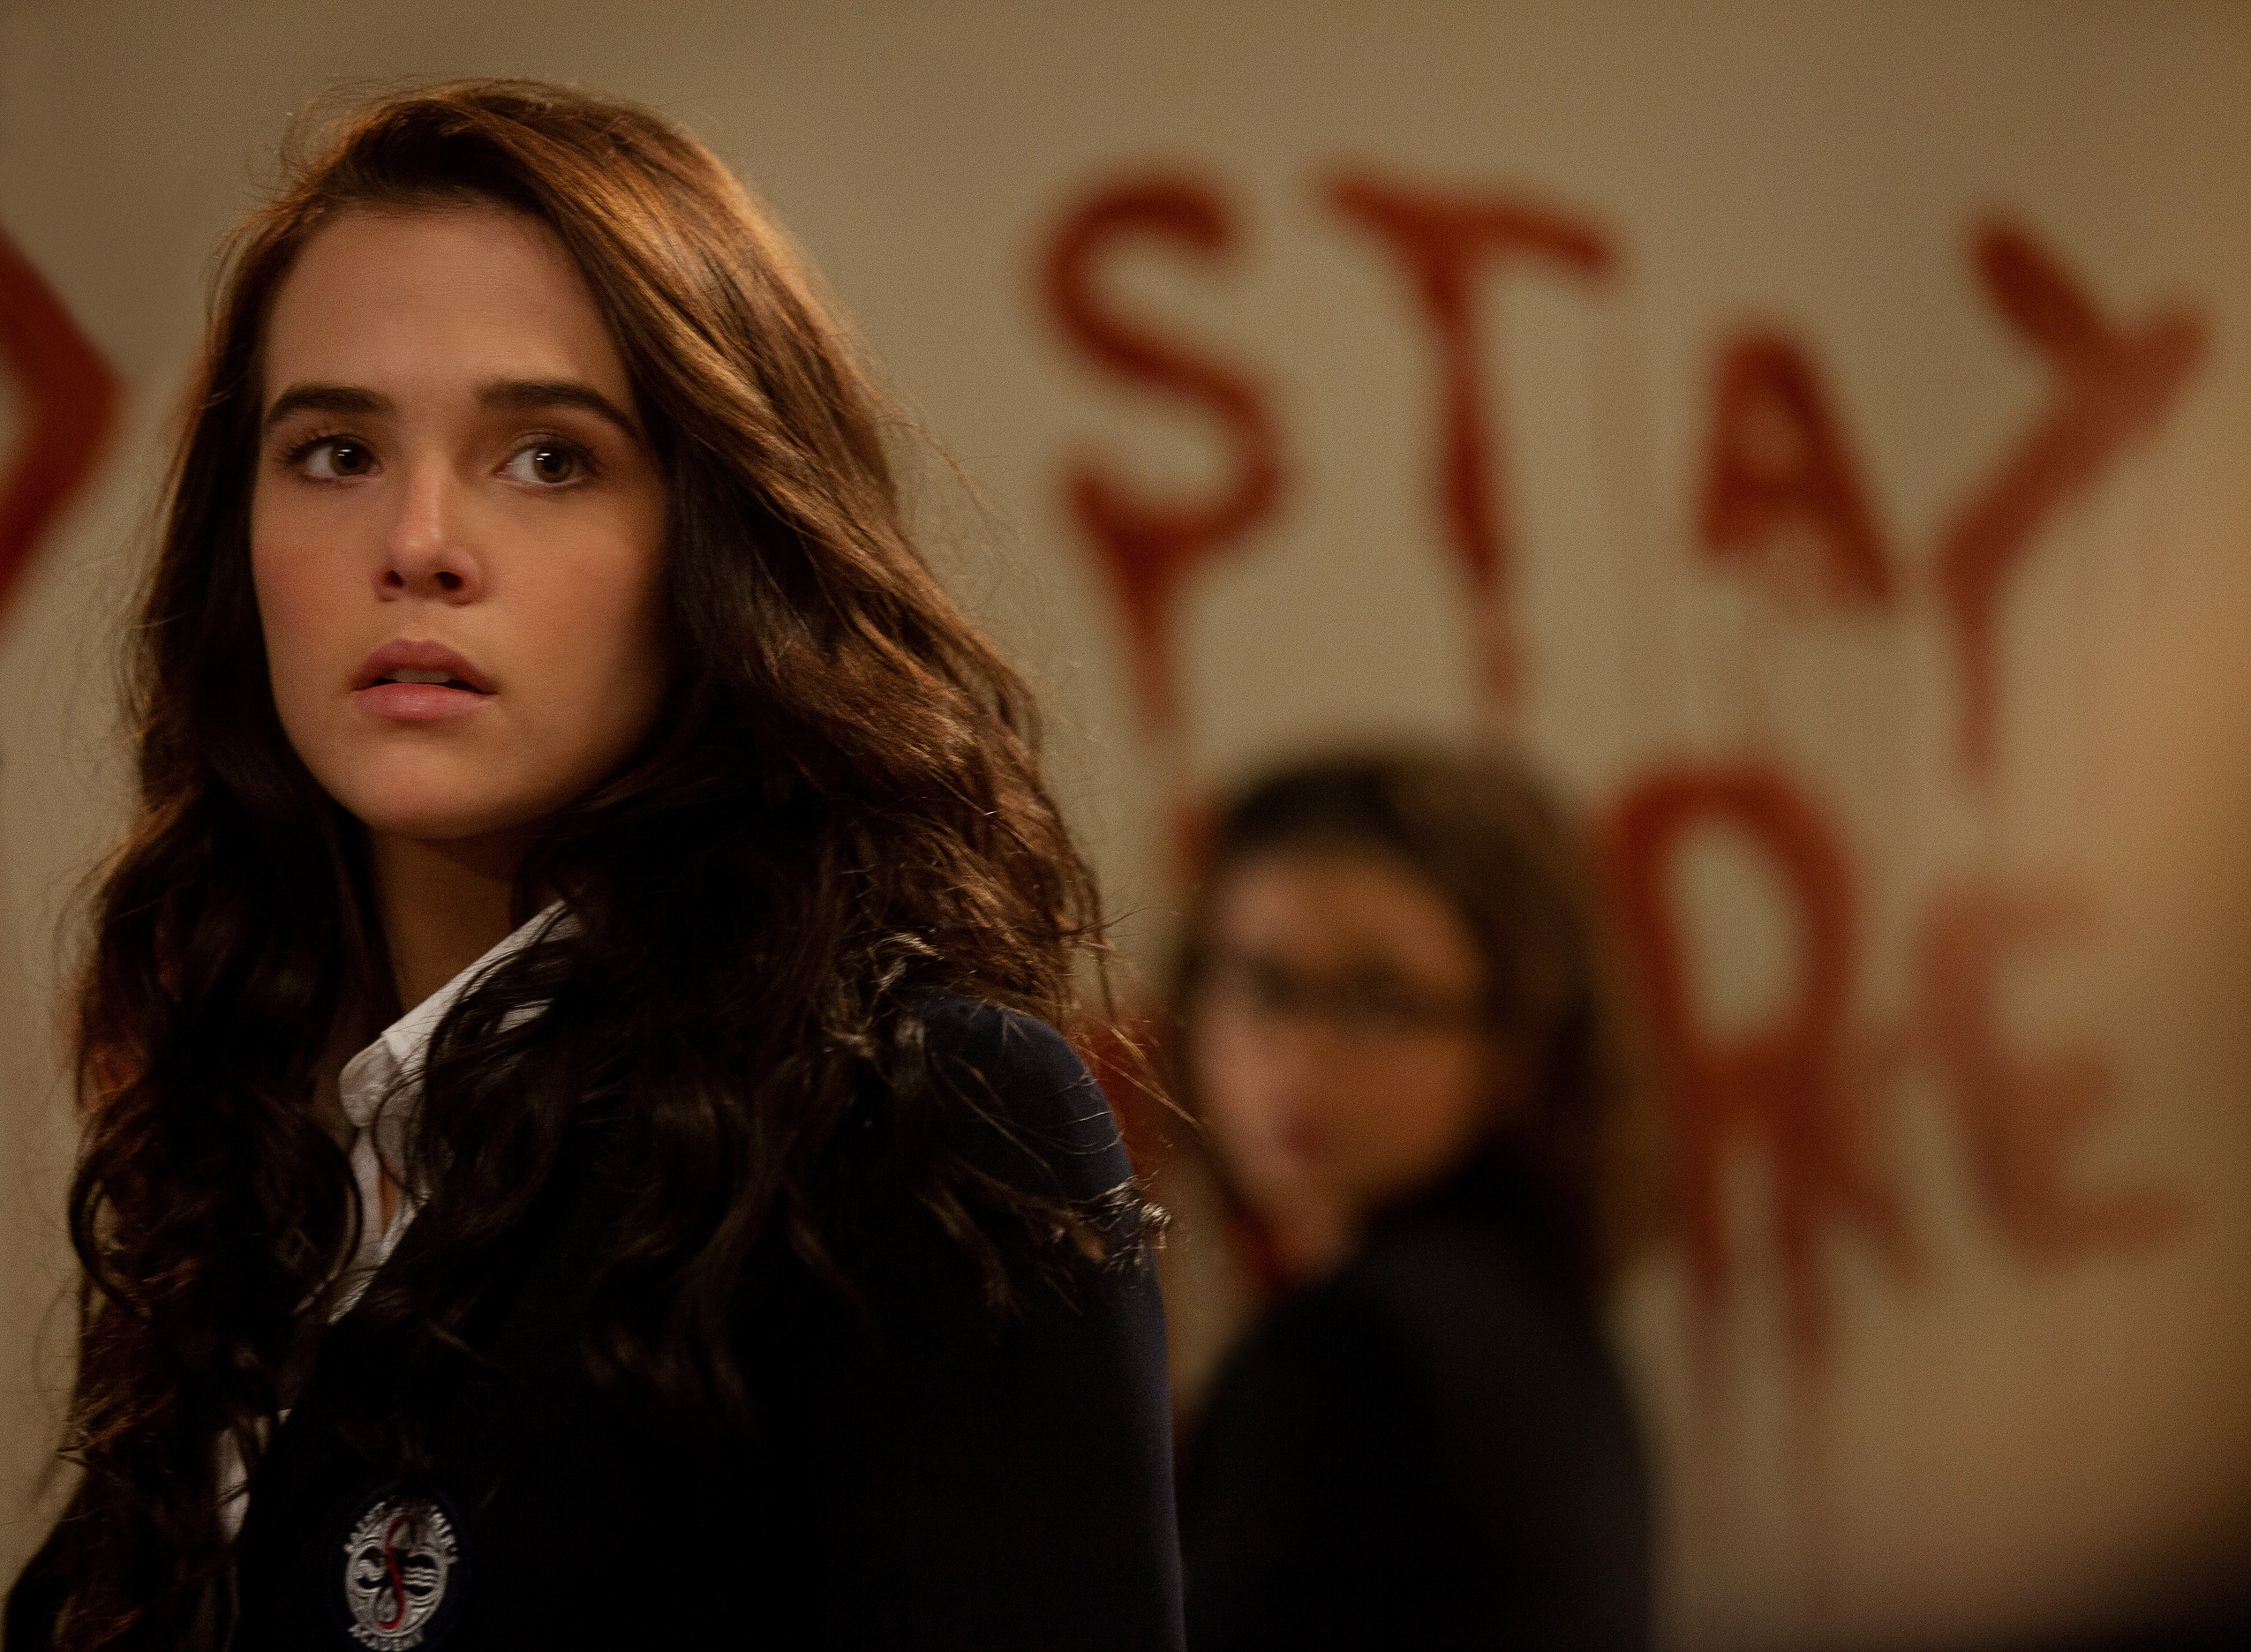 Vampire-Academy-Blood-Sisters-Official-Poster-Banner-PROMO-PHOTOS-15AGOSTO2013-01